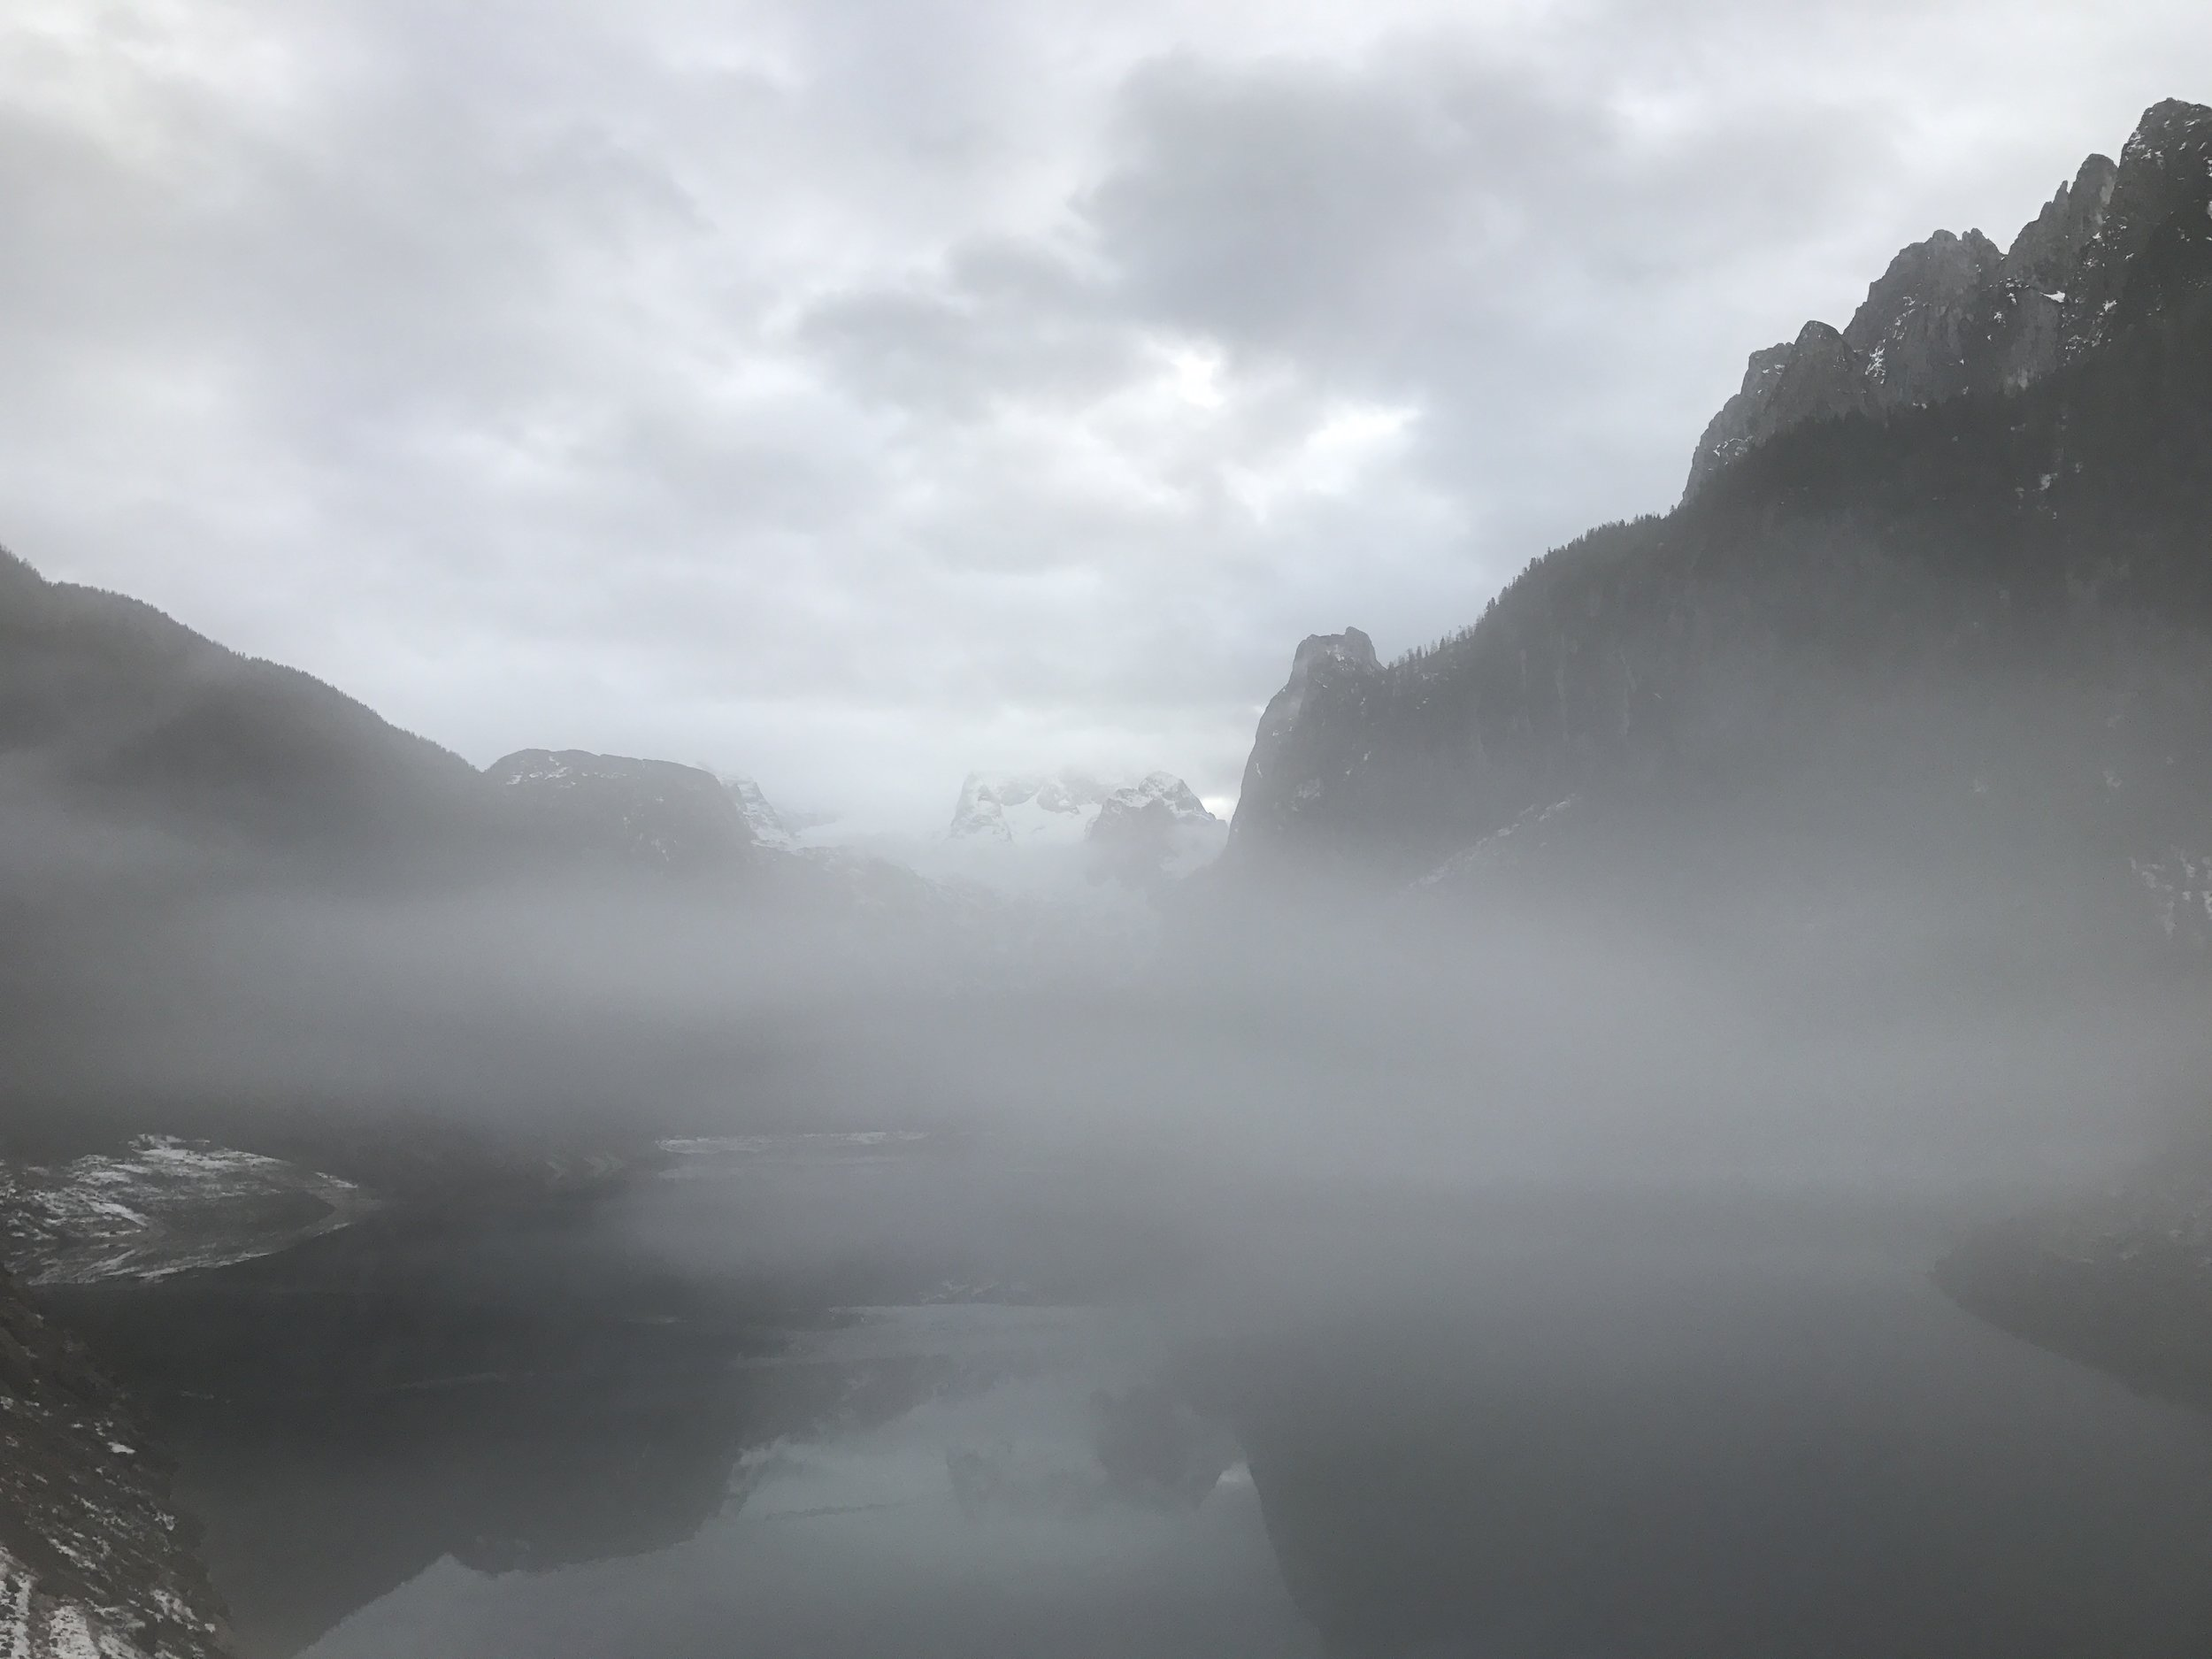 We couldn't quite see the mountainous glaciers due to low visibility but we tried.